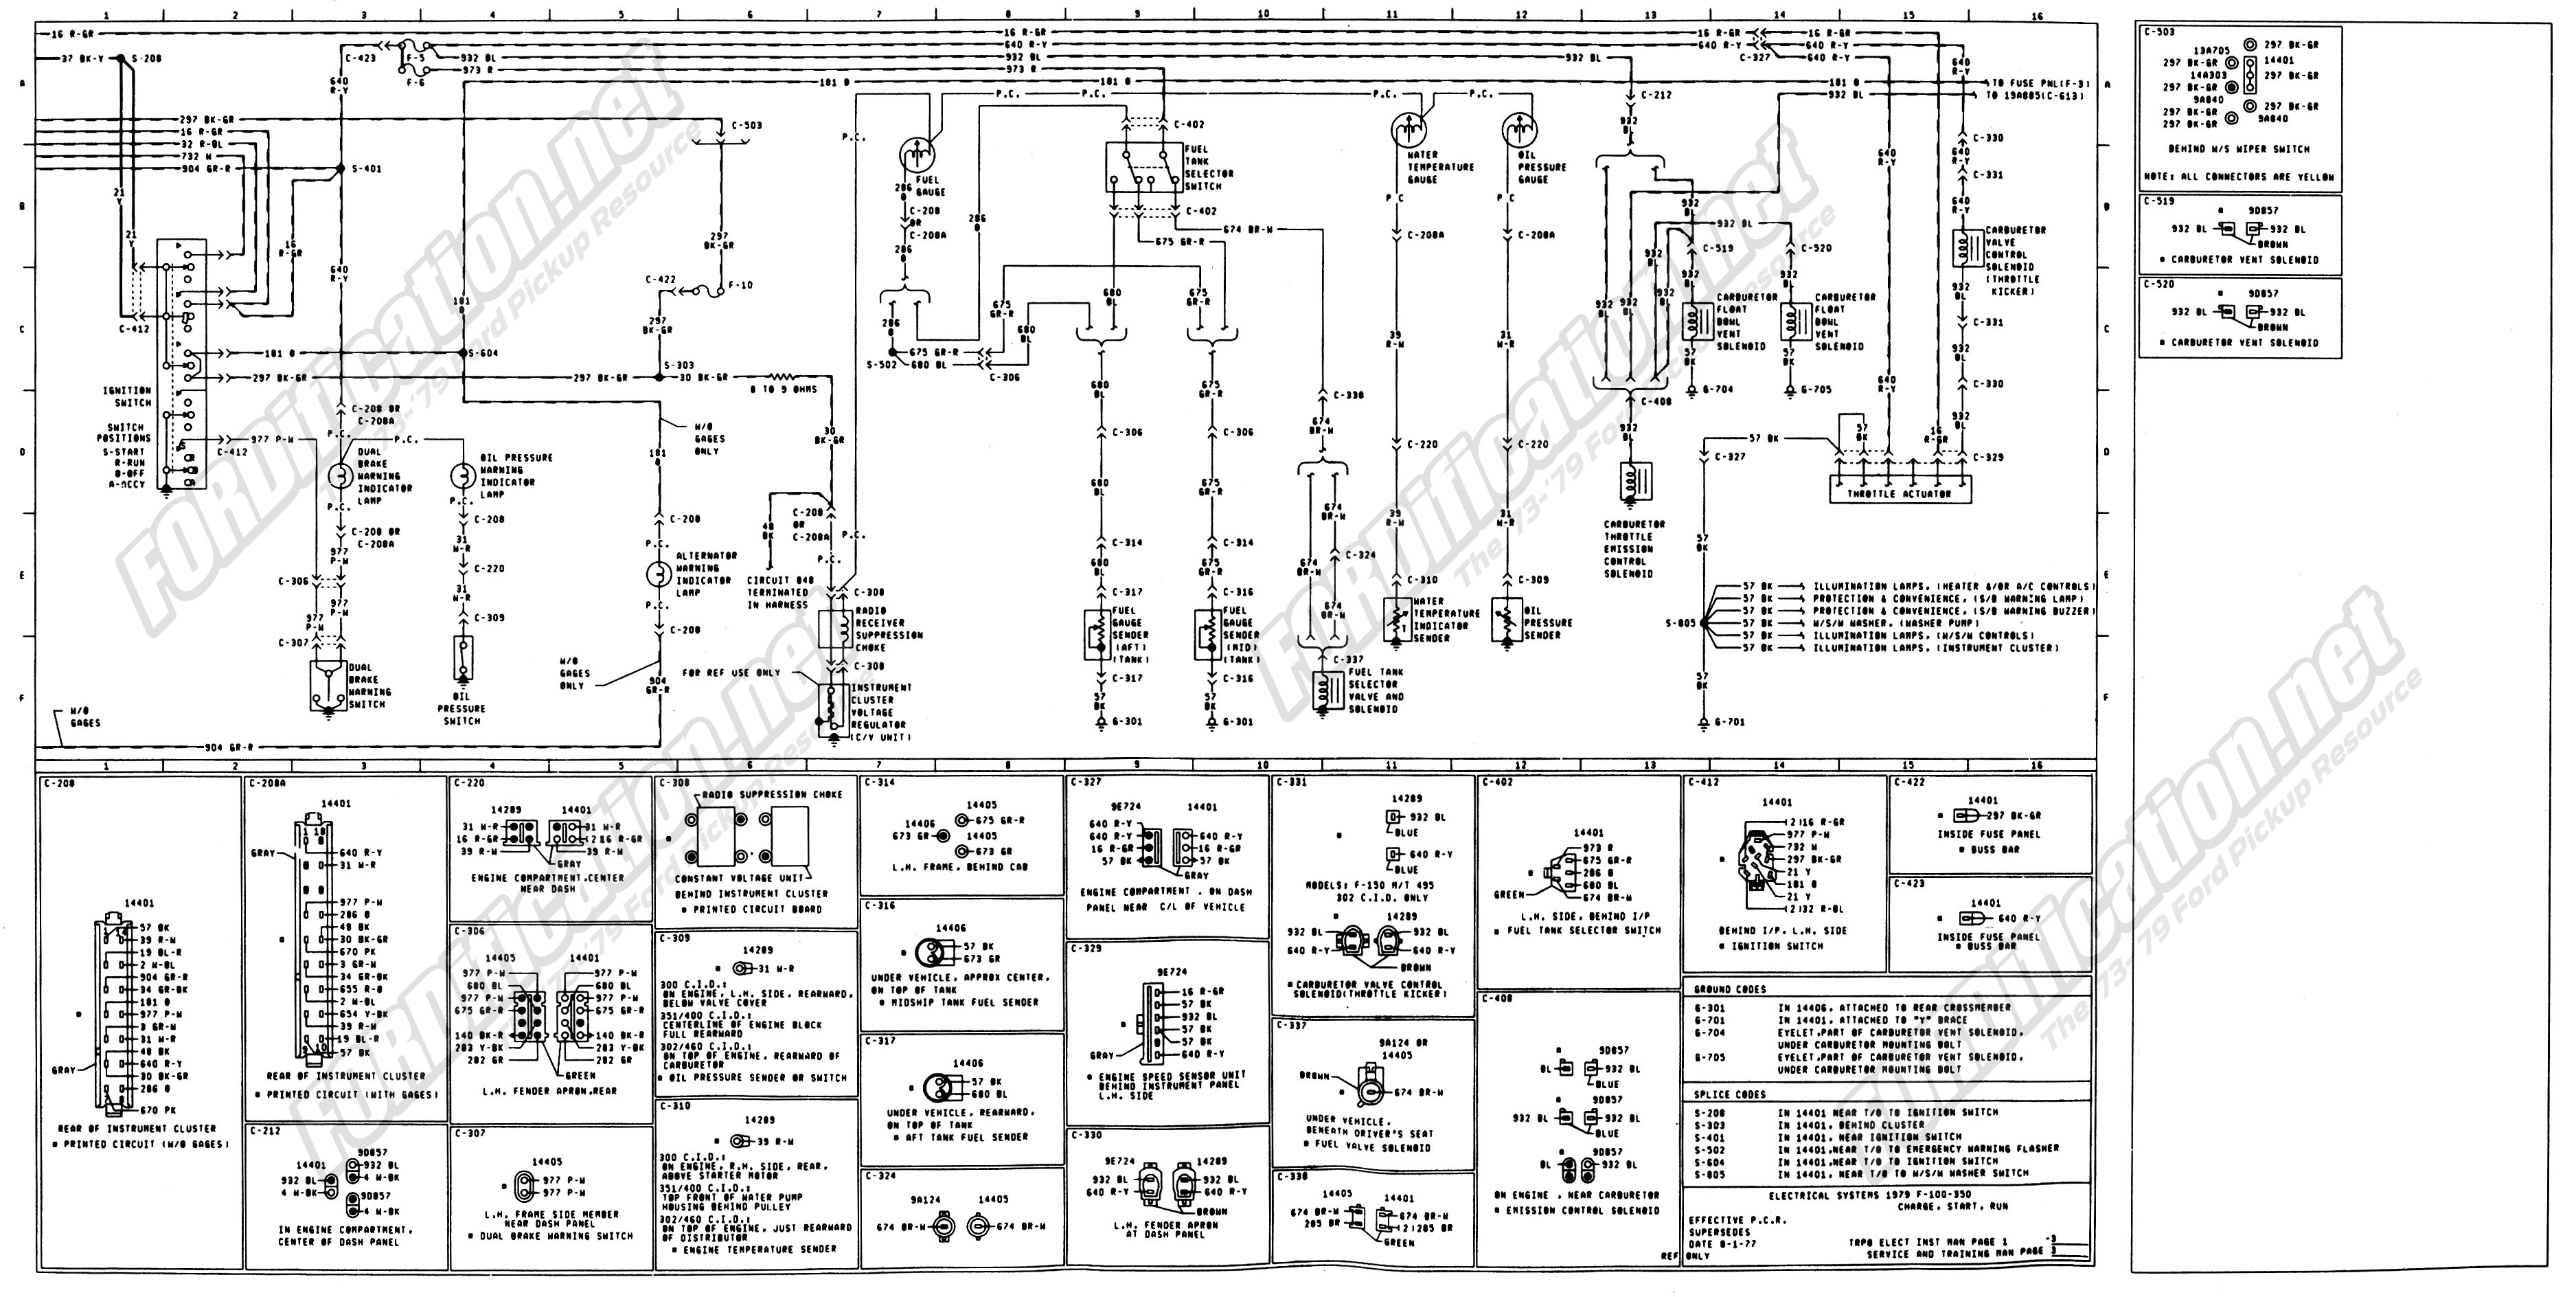 1973 Ford Wiring Diagram - Wiring Diagram Option  Ford F Wiring Diagram on 73 ford f250 steering, 73 ford f250 air conditioning, 73 dodge charger wiring diagram,